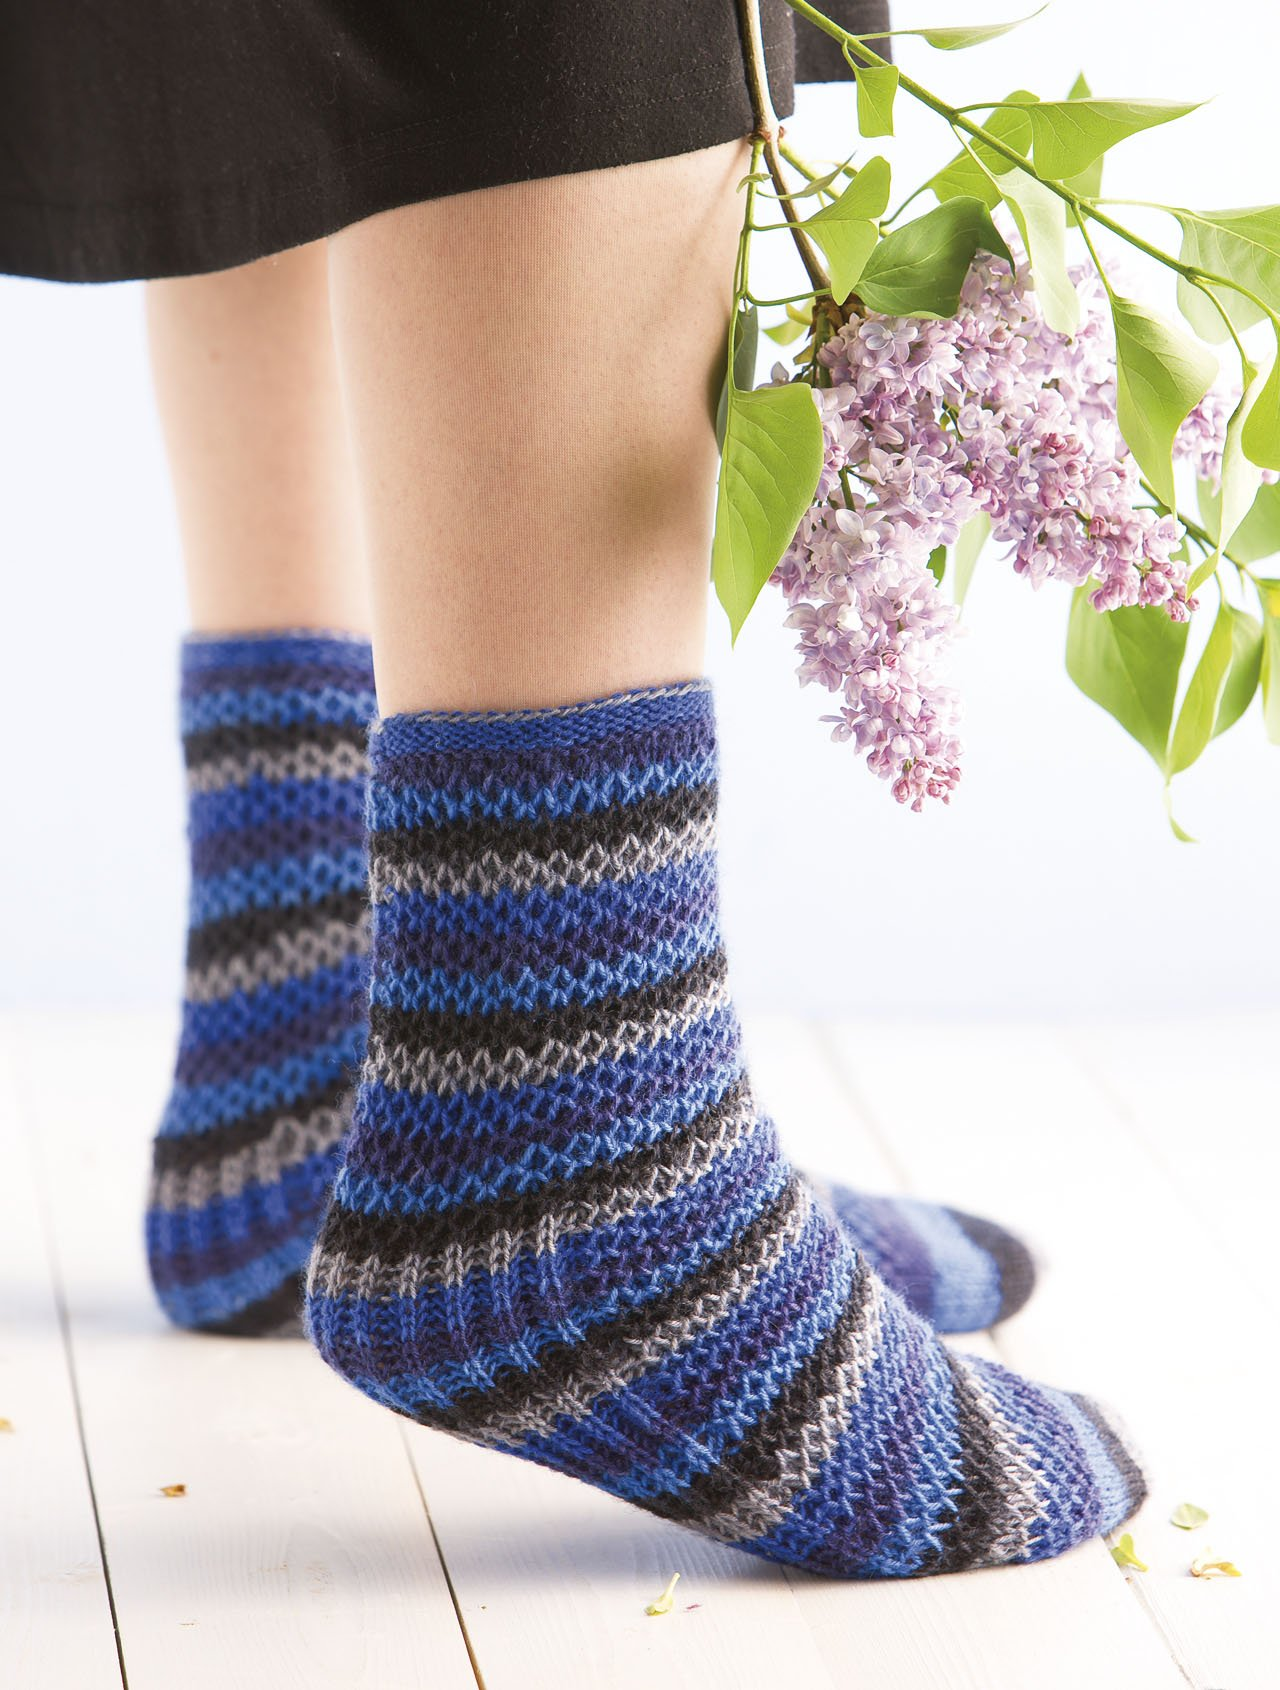 Knitting brioche stitch socks 14 easy patterns for tube socks knitting brioche stitch socks 14 easy patterns for tube socks barbara sander 8601406888784 amazon books bankloansurffo Gallery